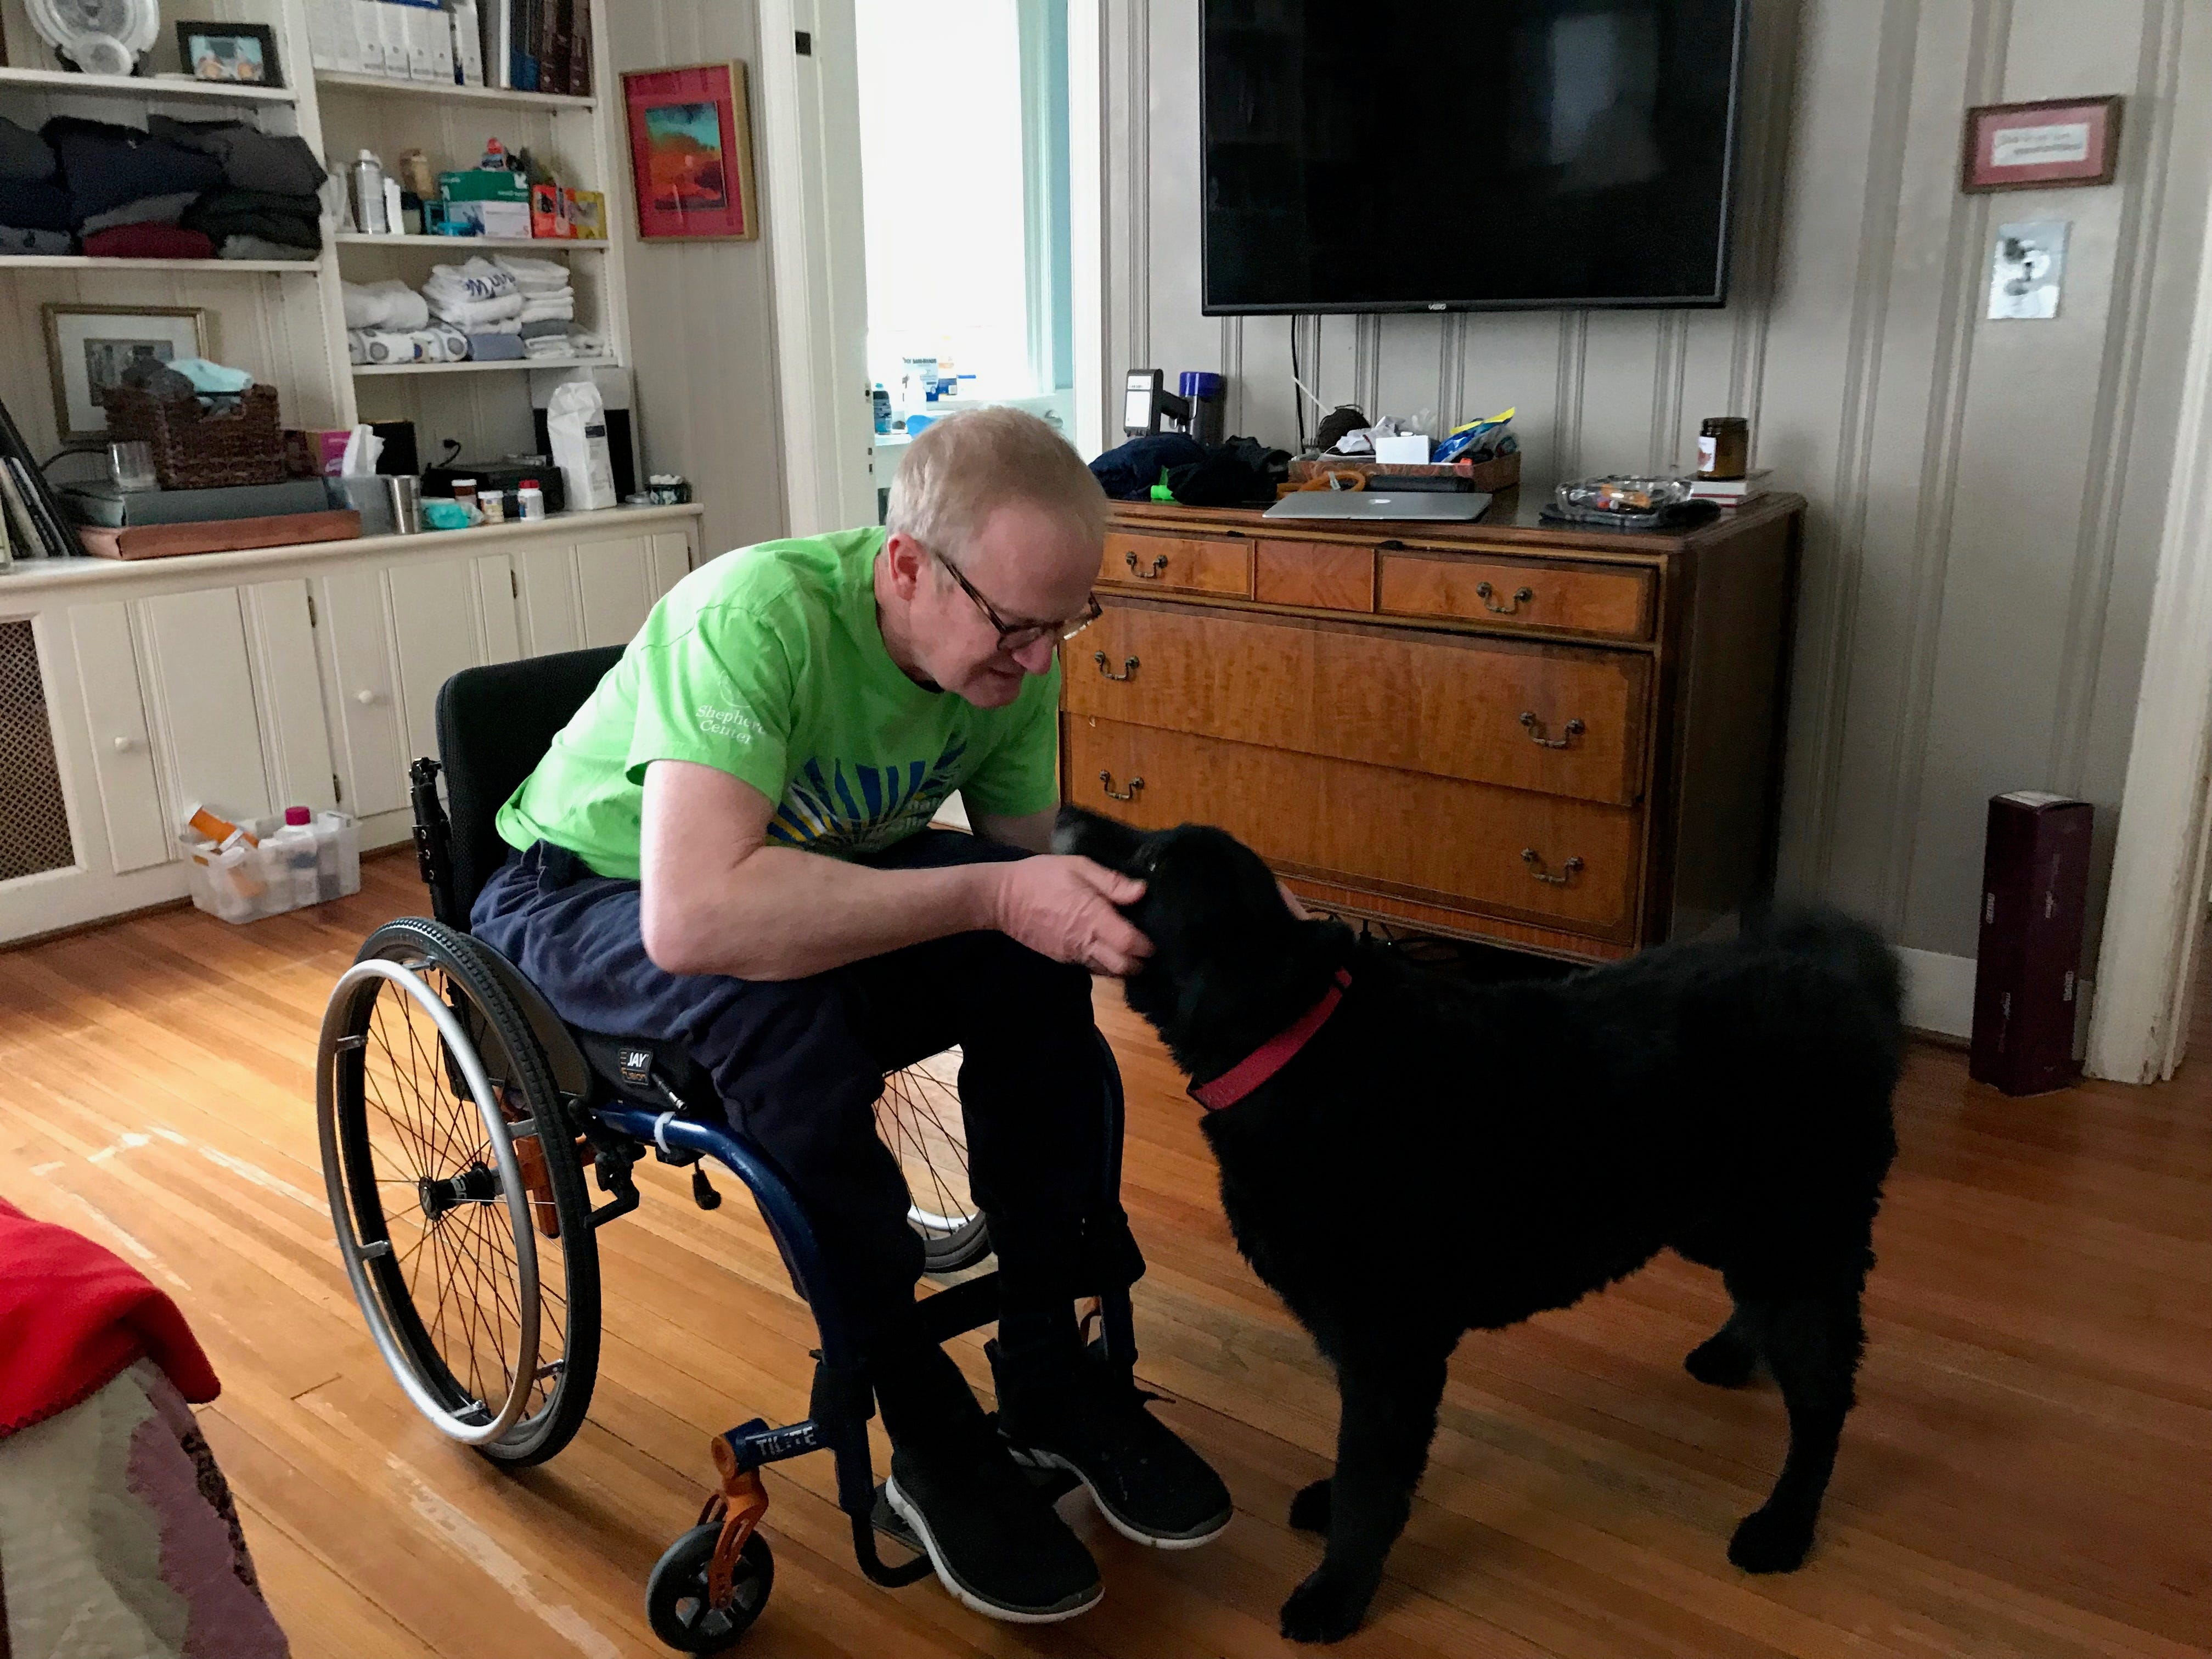 Dr. Robert Kyler with his dog Fritz in his home in Staunton, Virginia, on Friday, March 8, 2019.